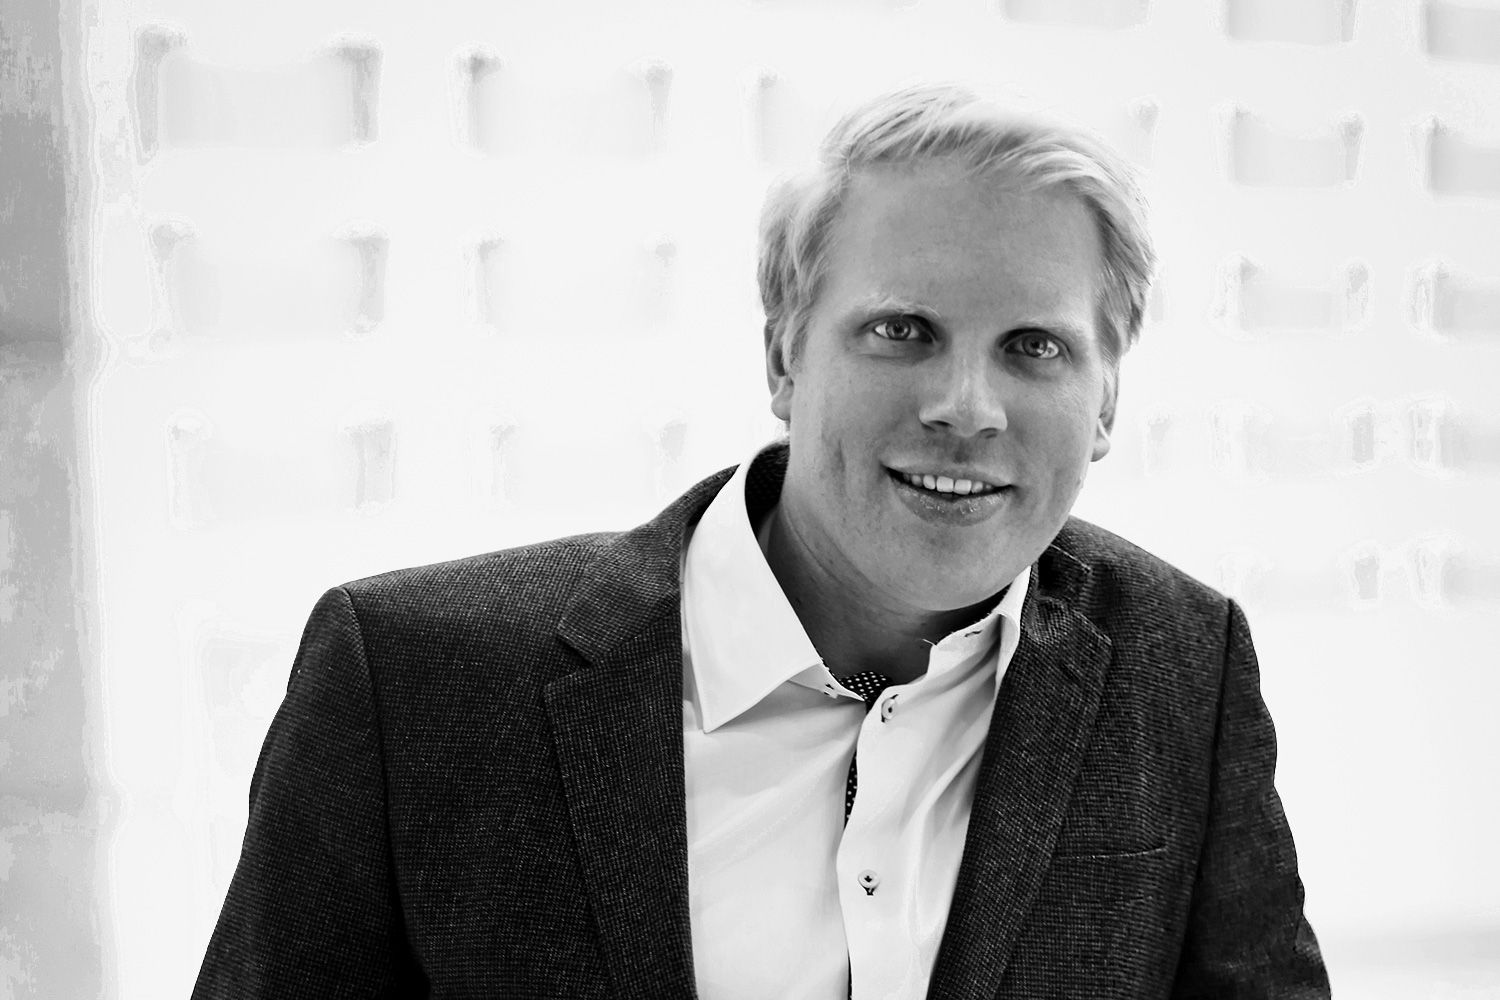 This Former Navy Seal Helps Early-Stage Startups Grow—With Military Precision